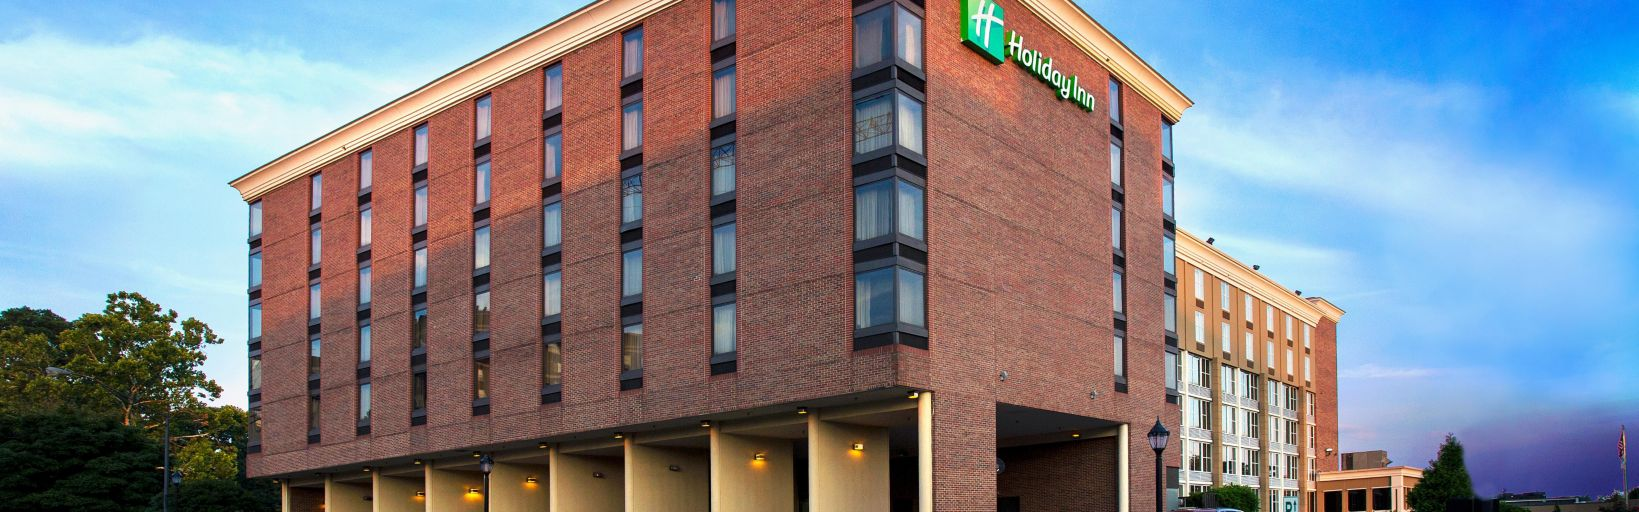 Holiday Inn Downtown Athens Centrally Located To All Attractions